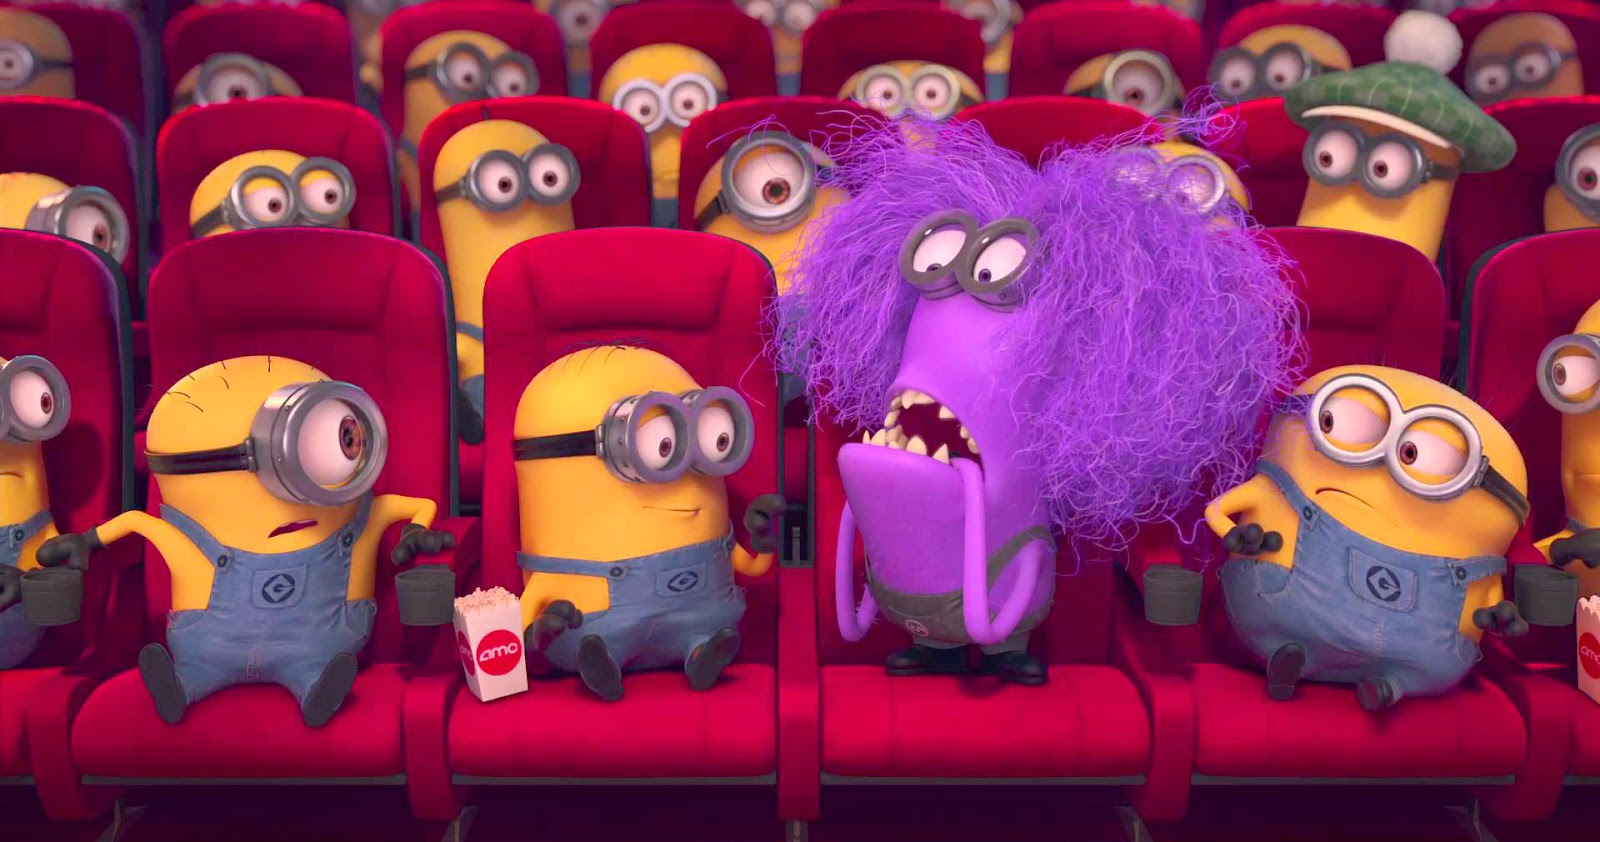 http://gallerycartoon.blogspot.com/2015/03/minions-movie-pictures-5.html